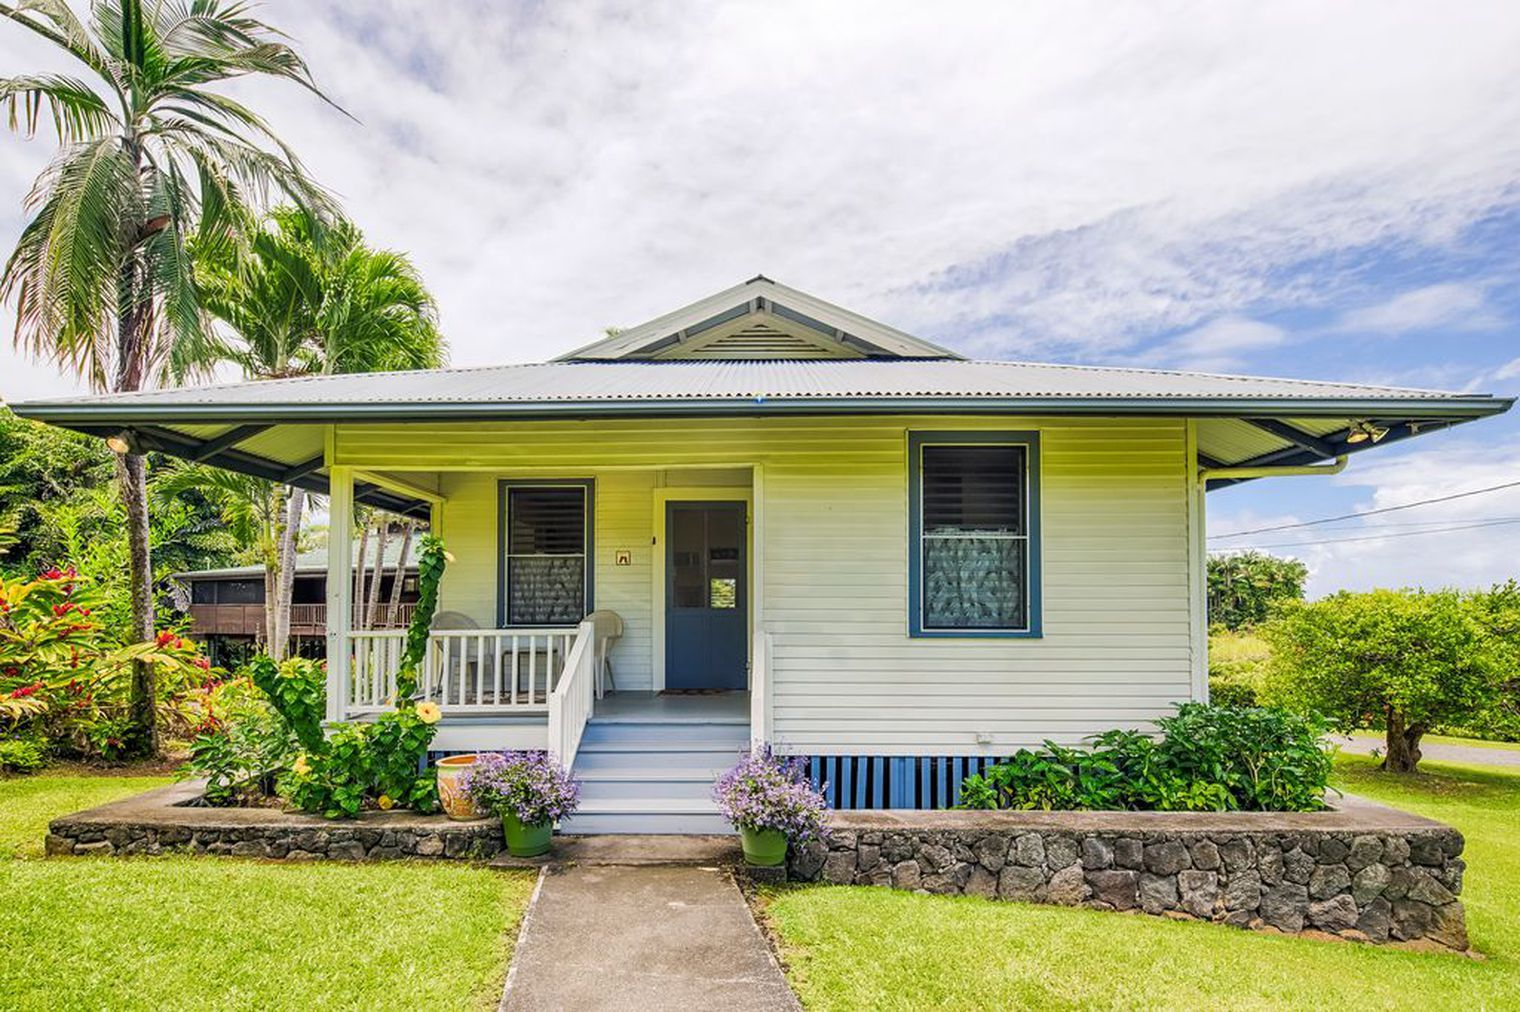 Adorable Hawaiian bungalow offers slice of paradise for